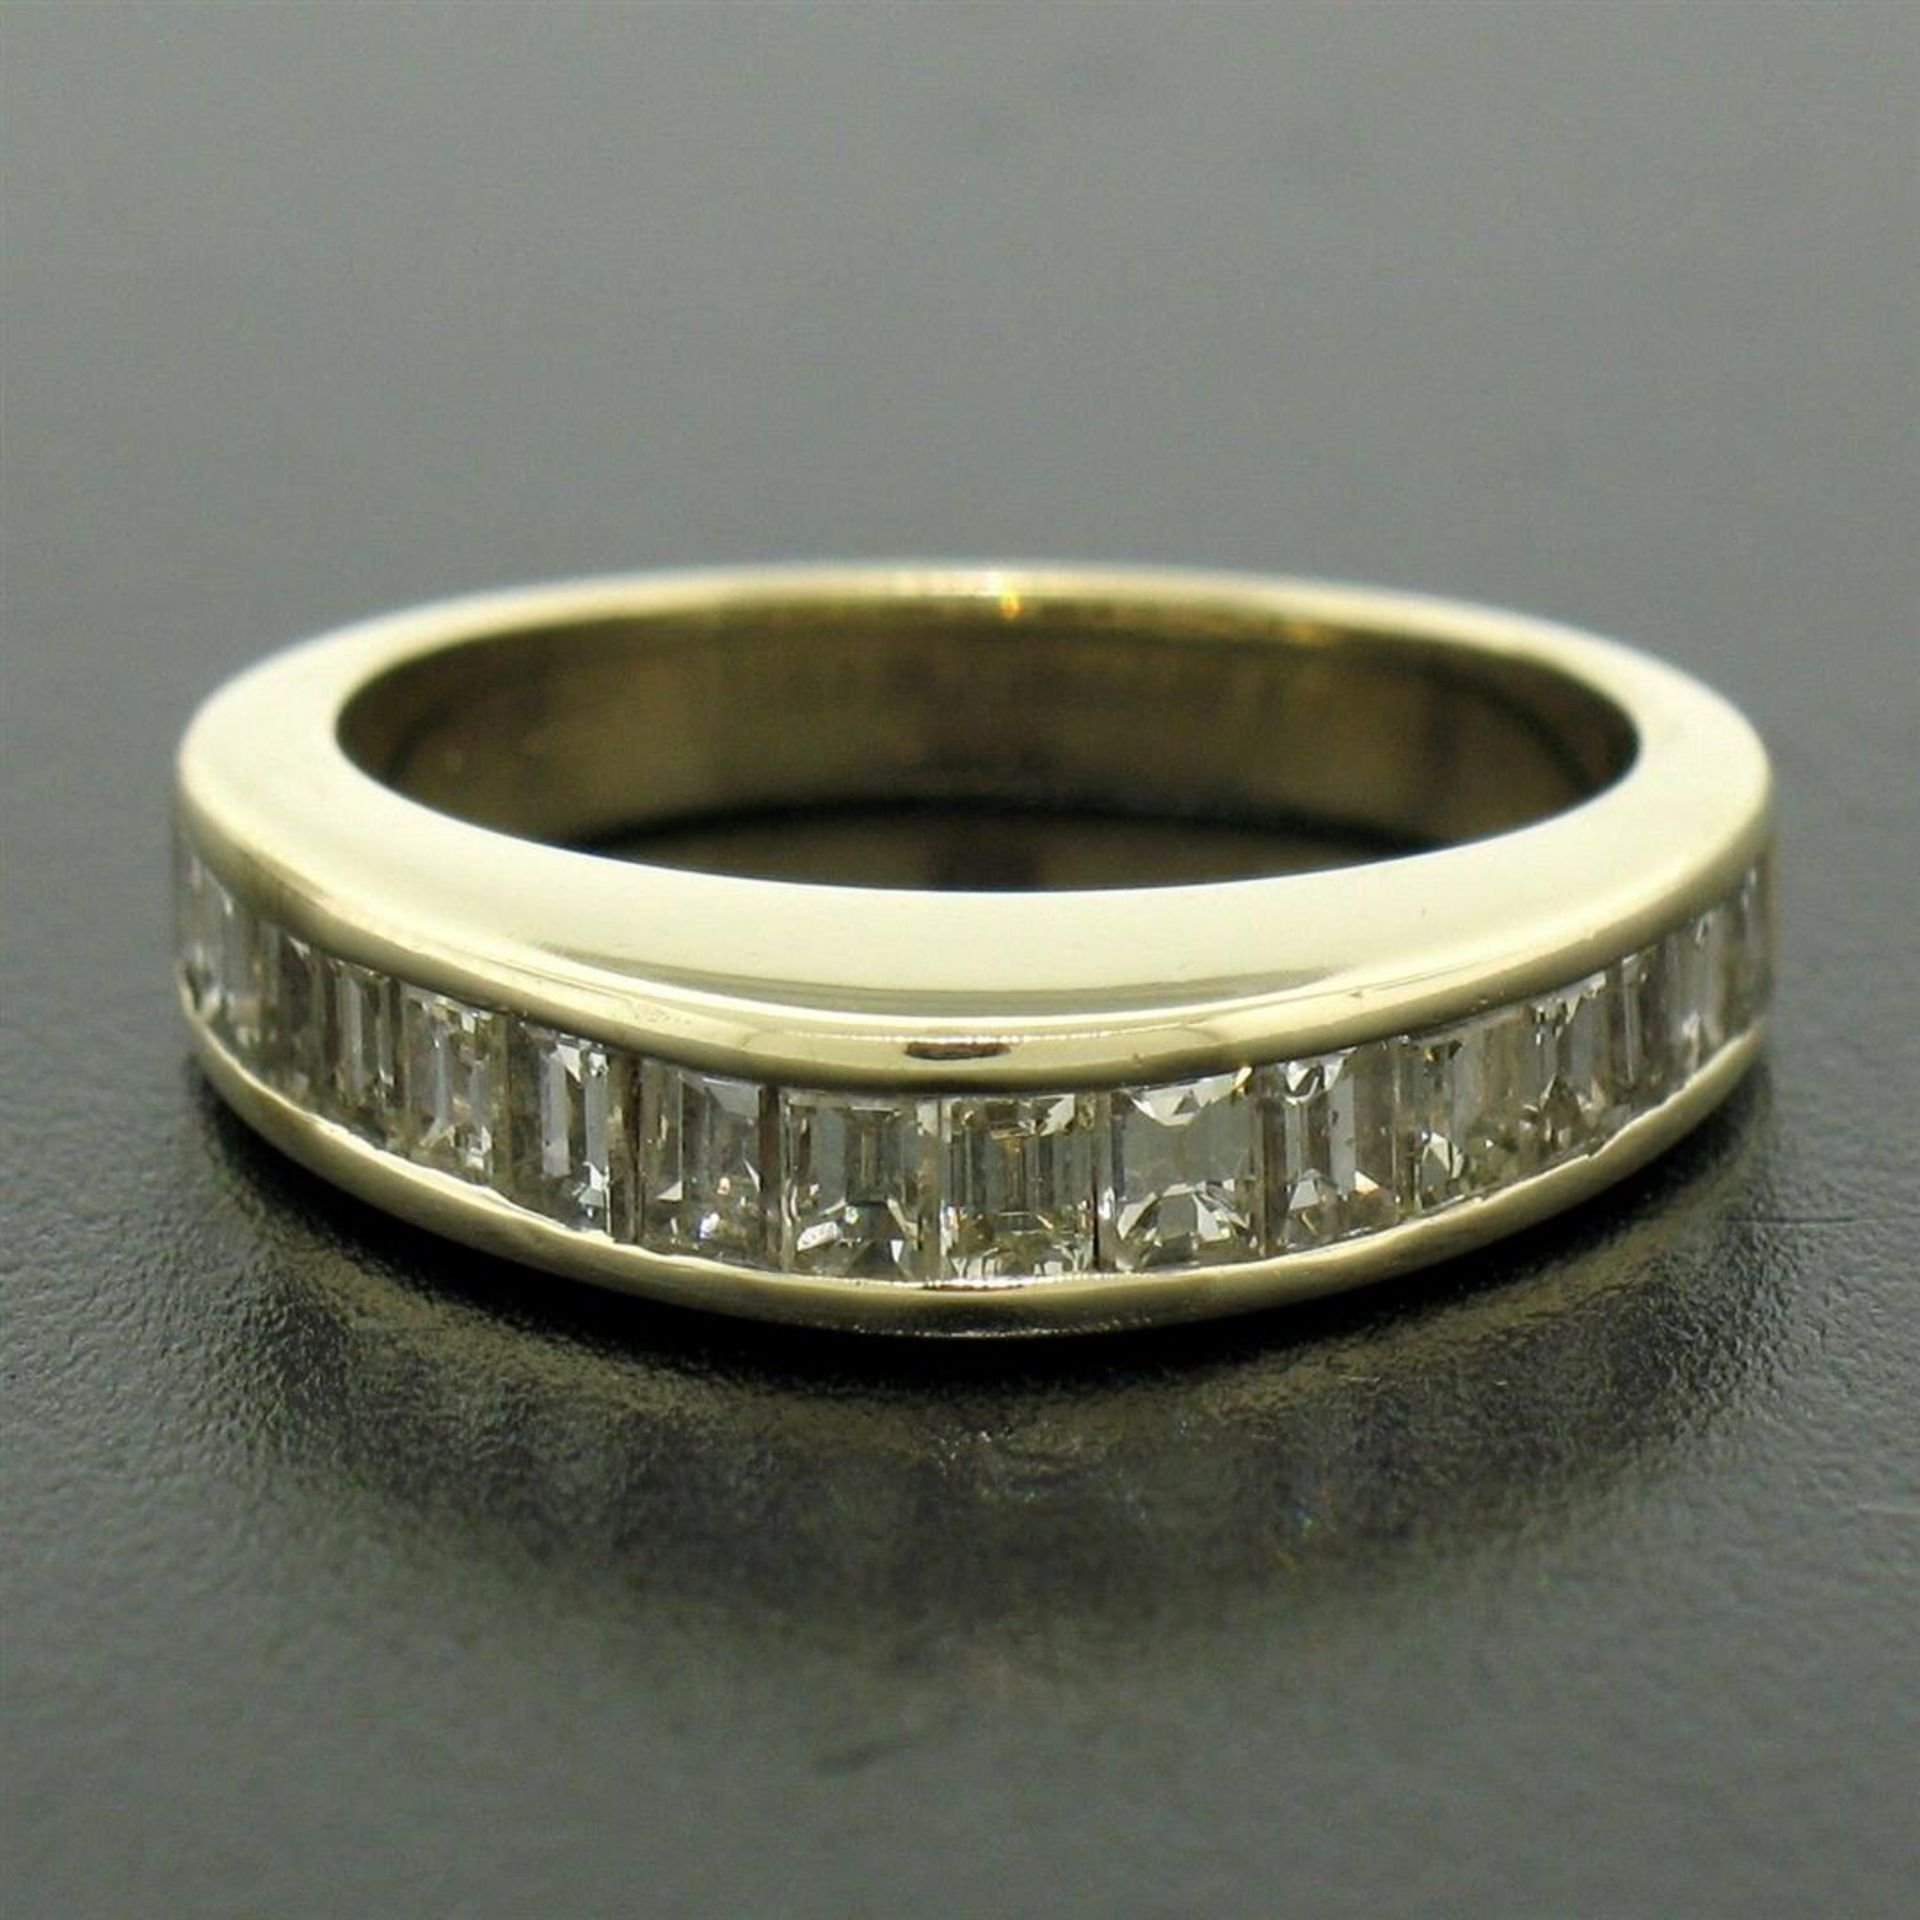 14kt Yellow Gold 1.00 ctw Baguette Diamond Channel Domed Wedding Band Ring - Image 2 of 9